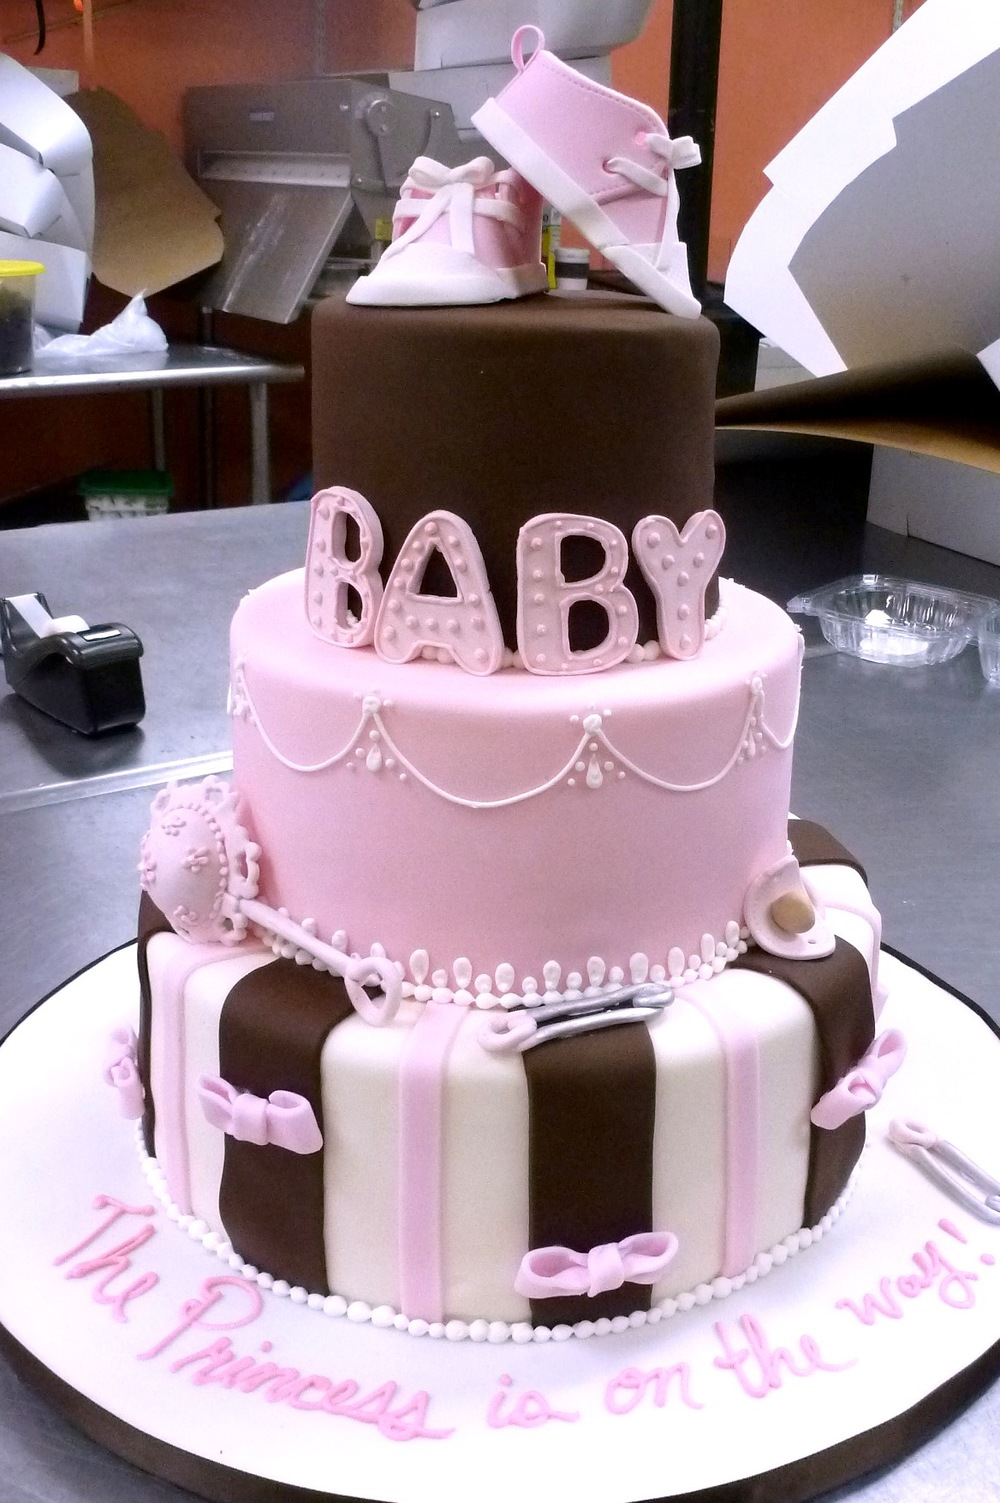 Baby Shower Cake with Baby Shoes